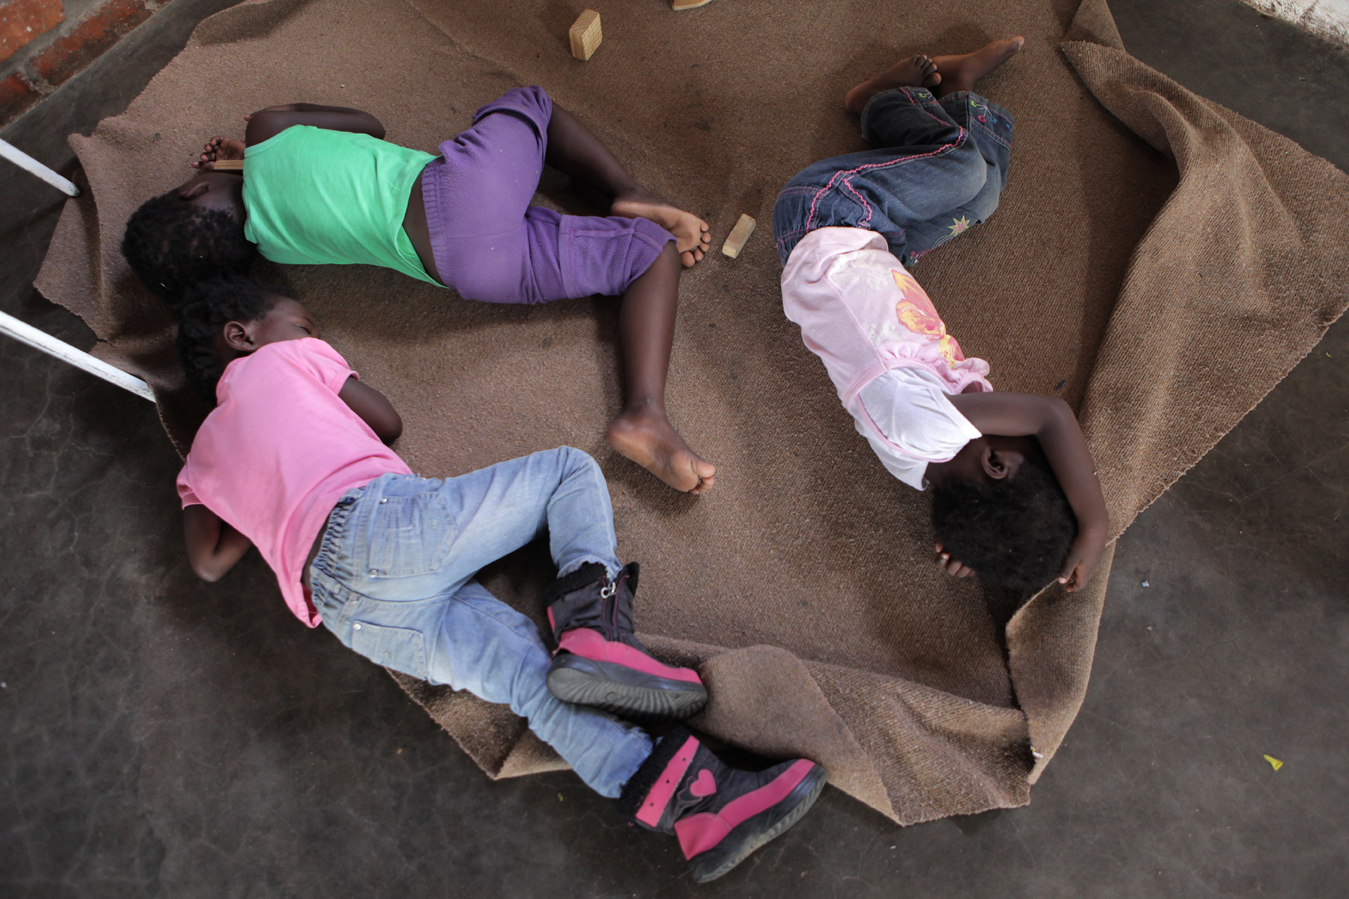 Children nap on the floor at the Folovhodwe Creche in Mutale Municipality, Limpopo province. The Folovhodwe Creche is a basic facility currently operating out of the community church. Teacher Alice Tshisevhe is constructing a nearby building for the centre, and hopes to eventually become registered as a formal Early Childhood Development (ECD) centre. Save the Children has recently begun supporting a number of creches in the Musina area with learning materials, play structures and management support.